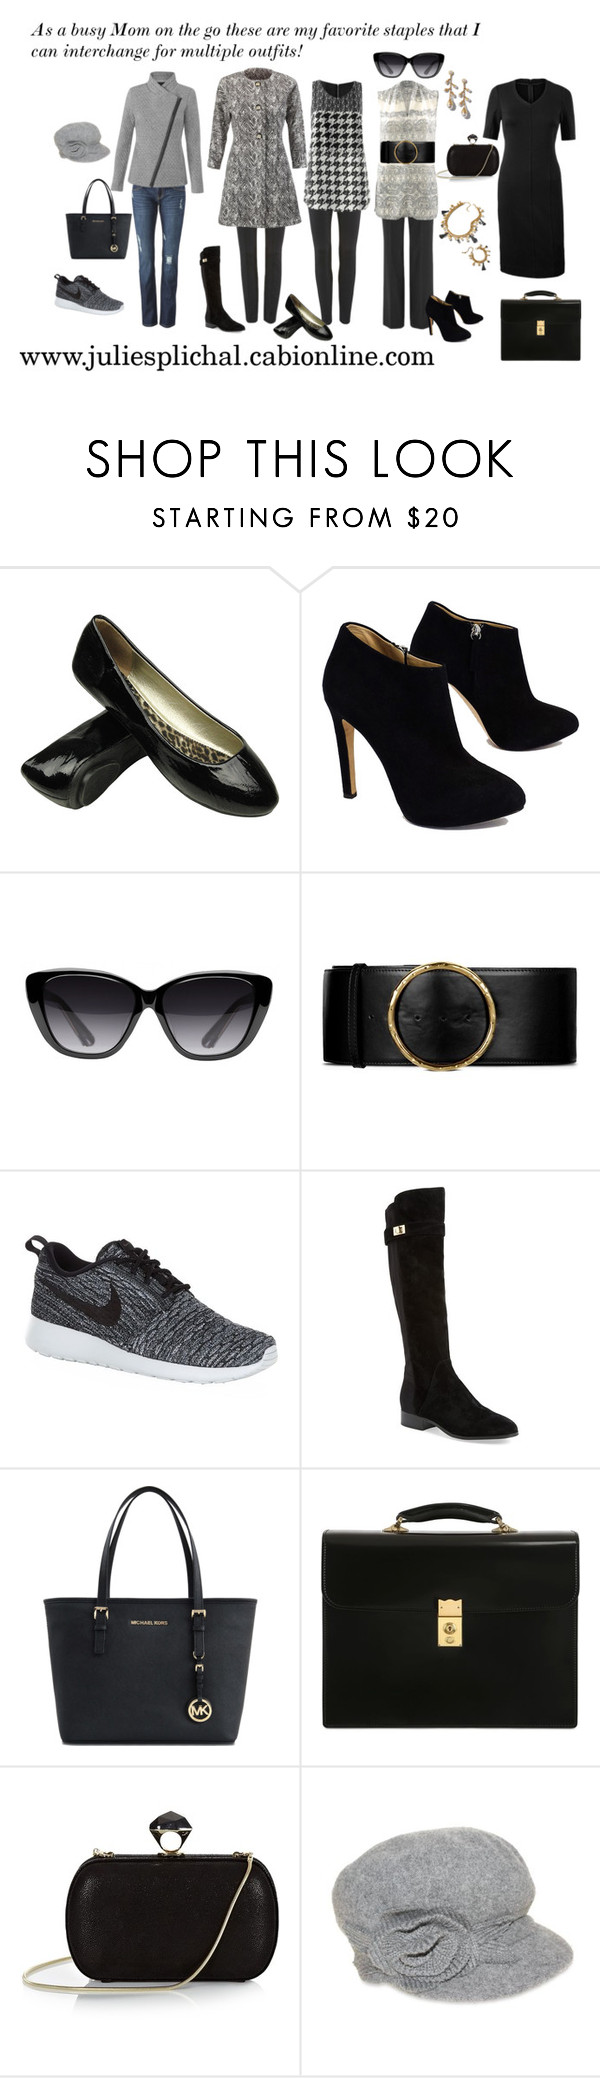 """As A Busy Mom On The Go These are my staples!"" by julie-splichal ❤ liked on Polyvore featuring CAbi, Giuseppe Zanotti, Elizabeth and James, STELLA McCARTNEY, NIKE, Nicole Miller, Michael Kors, OHBA, DVF and Nine West"